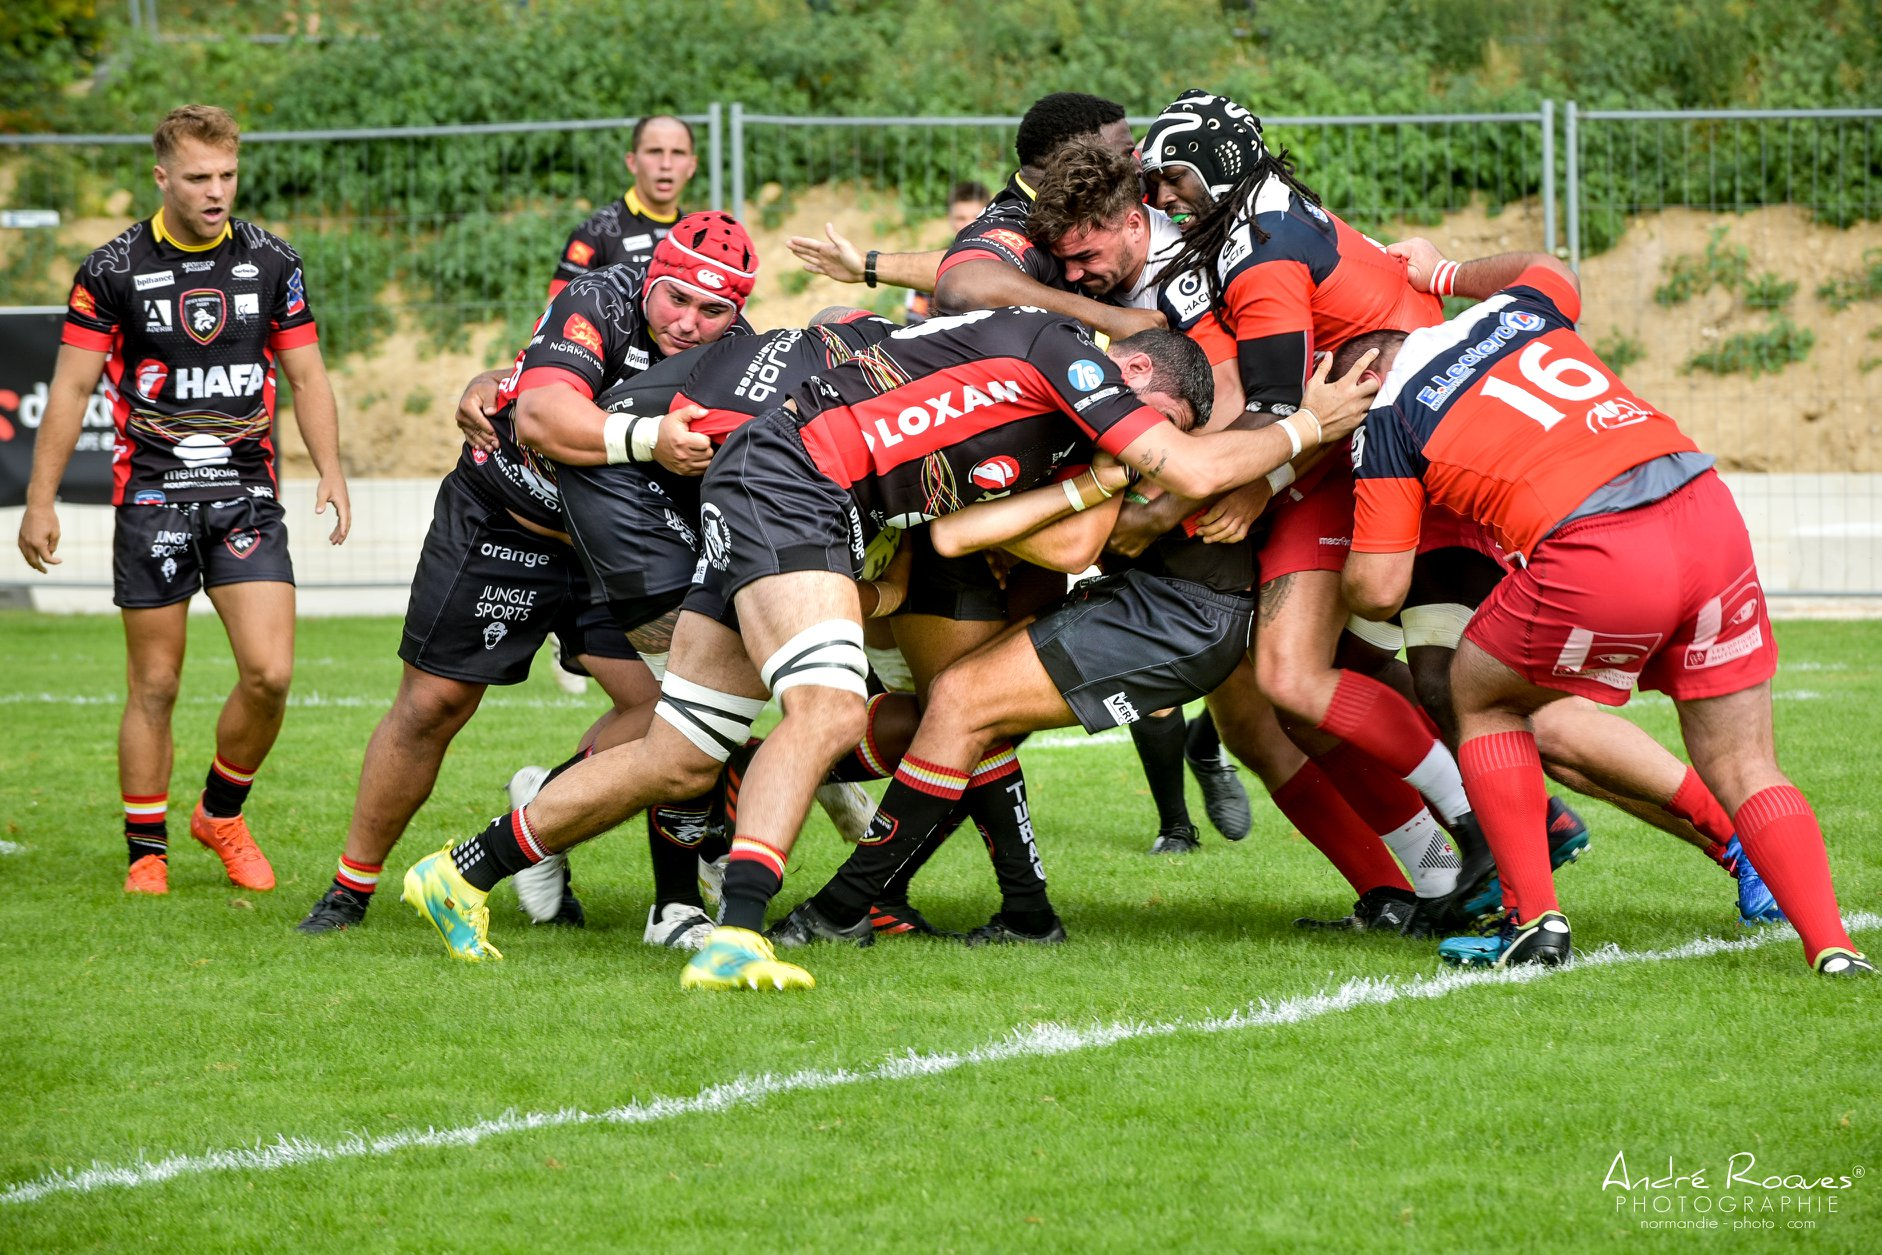 https://rouennormandierugby.fr/wp-content/uploads/2019/01/entrainement_A.jpg